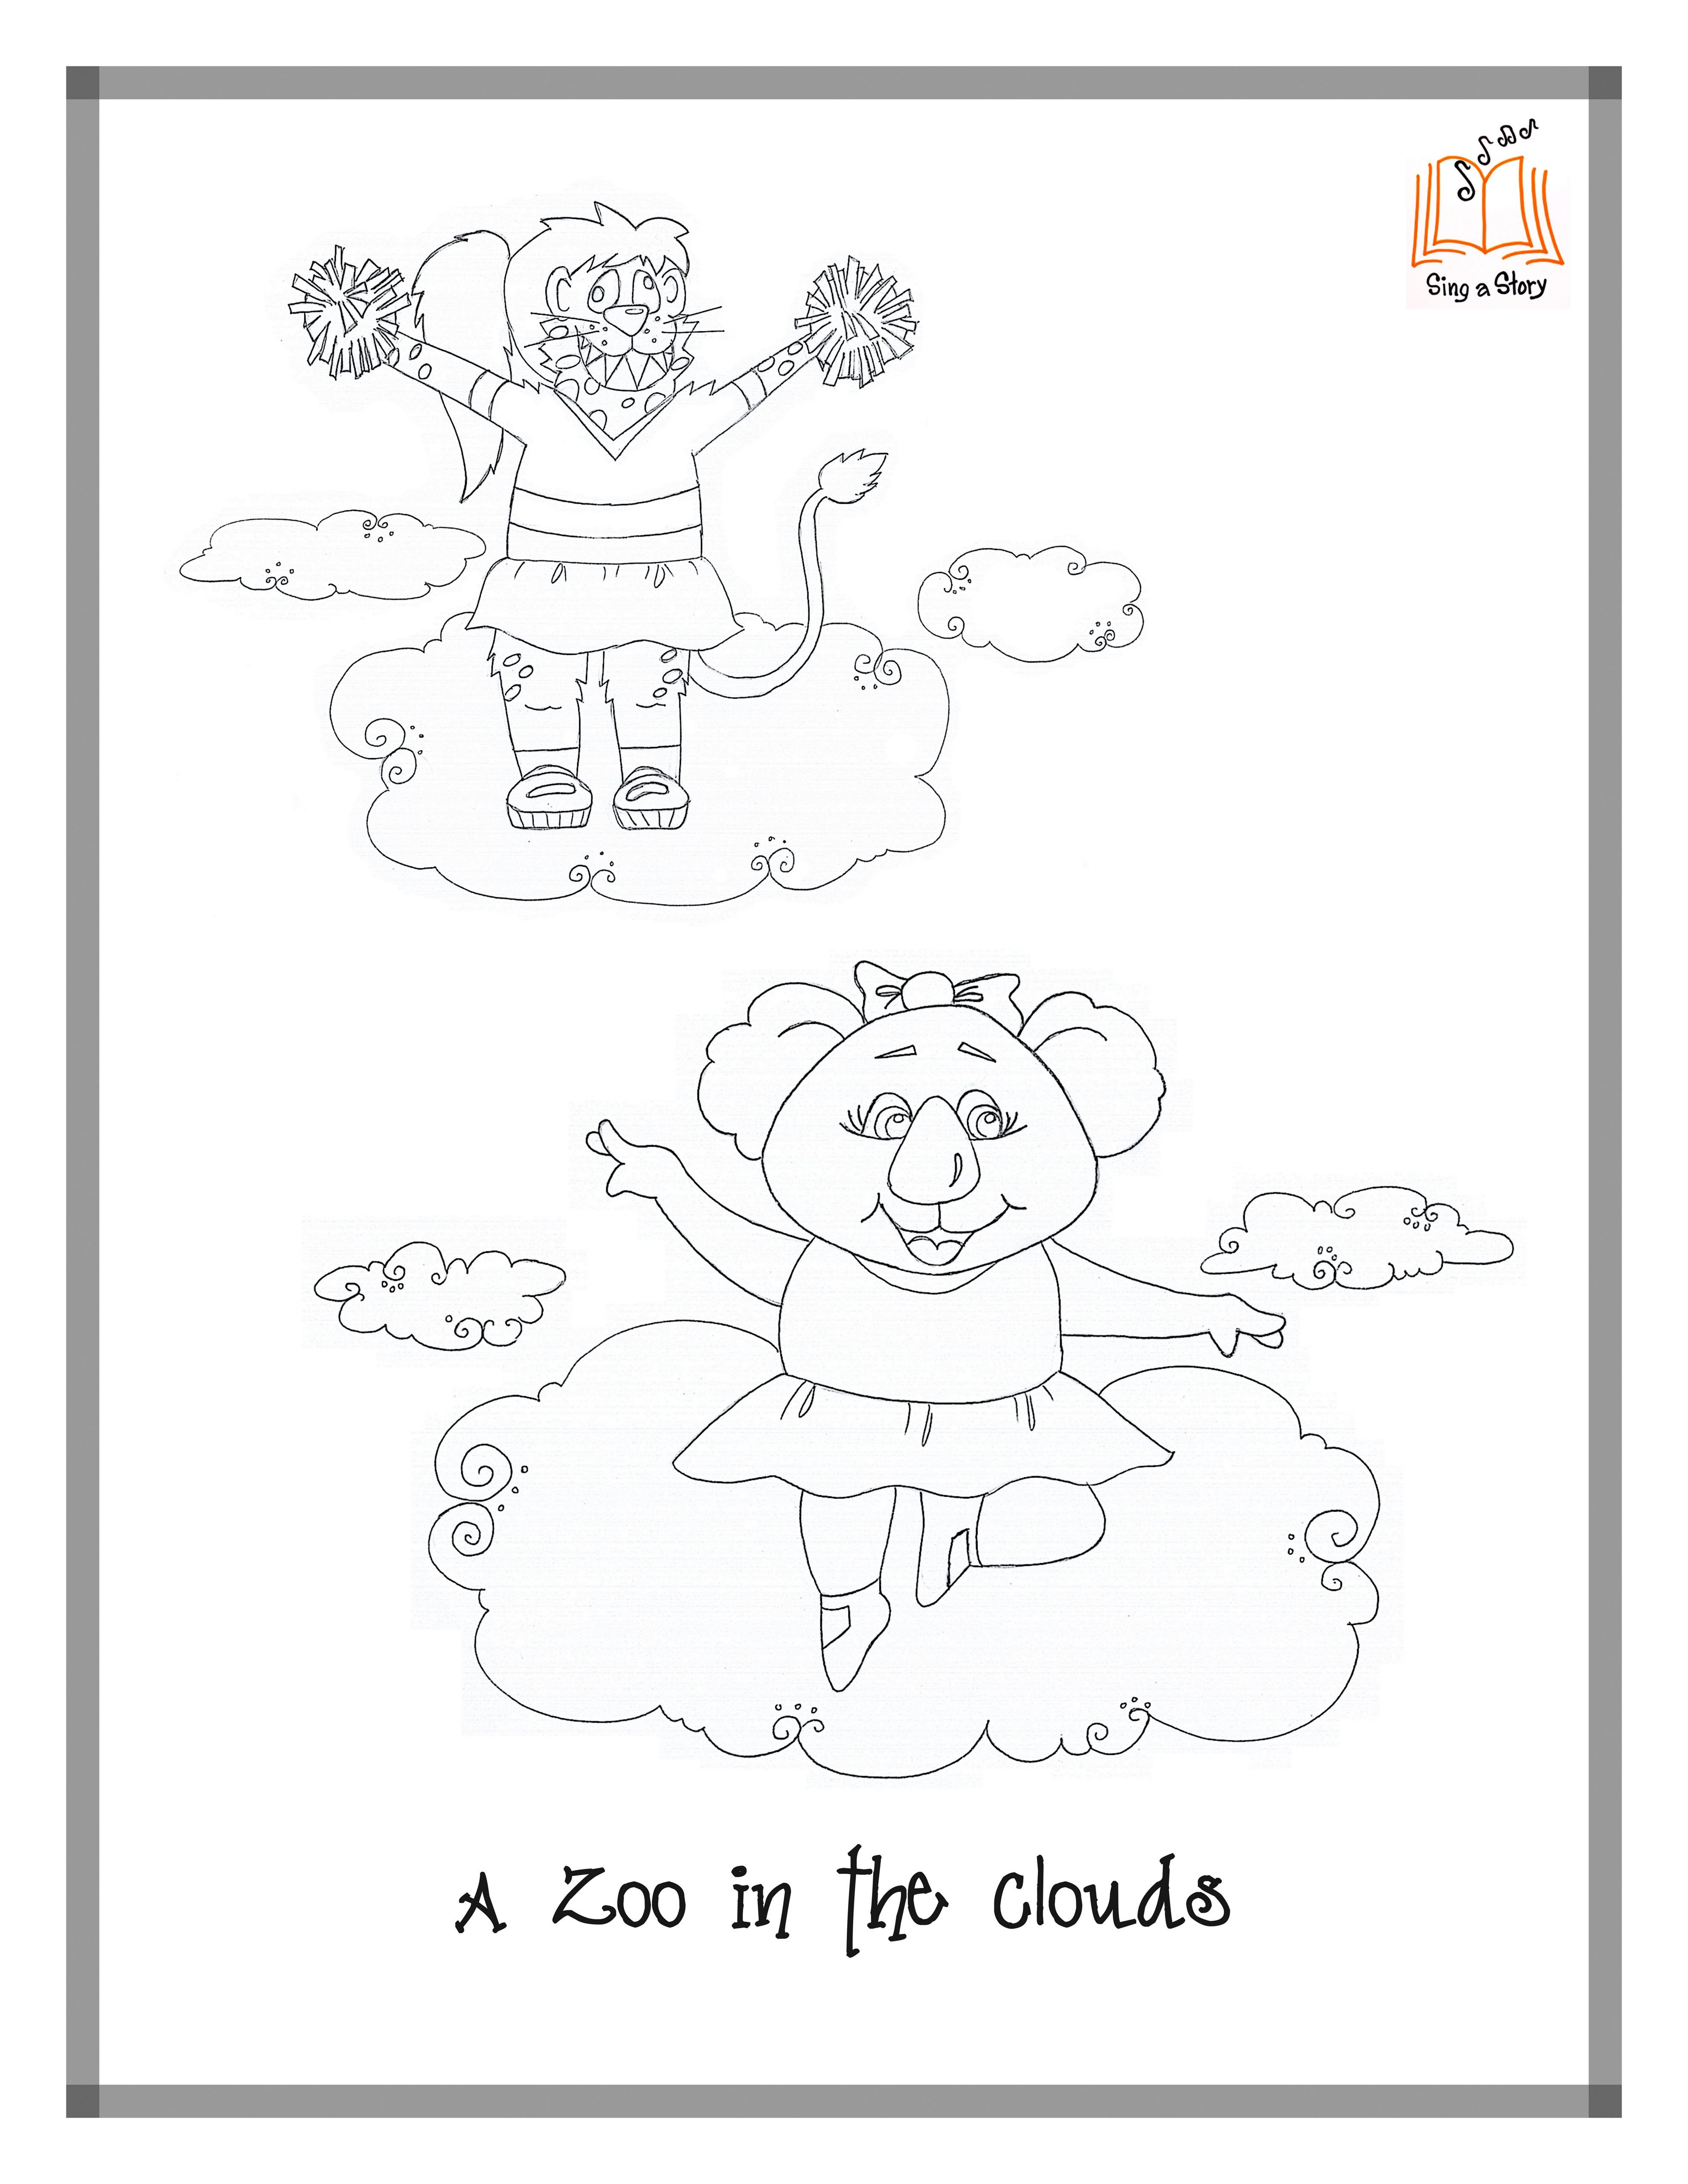 A Zoo in the Clouds Coloring Pages Sing A Story